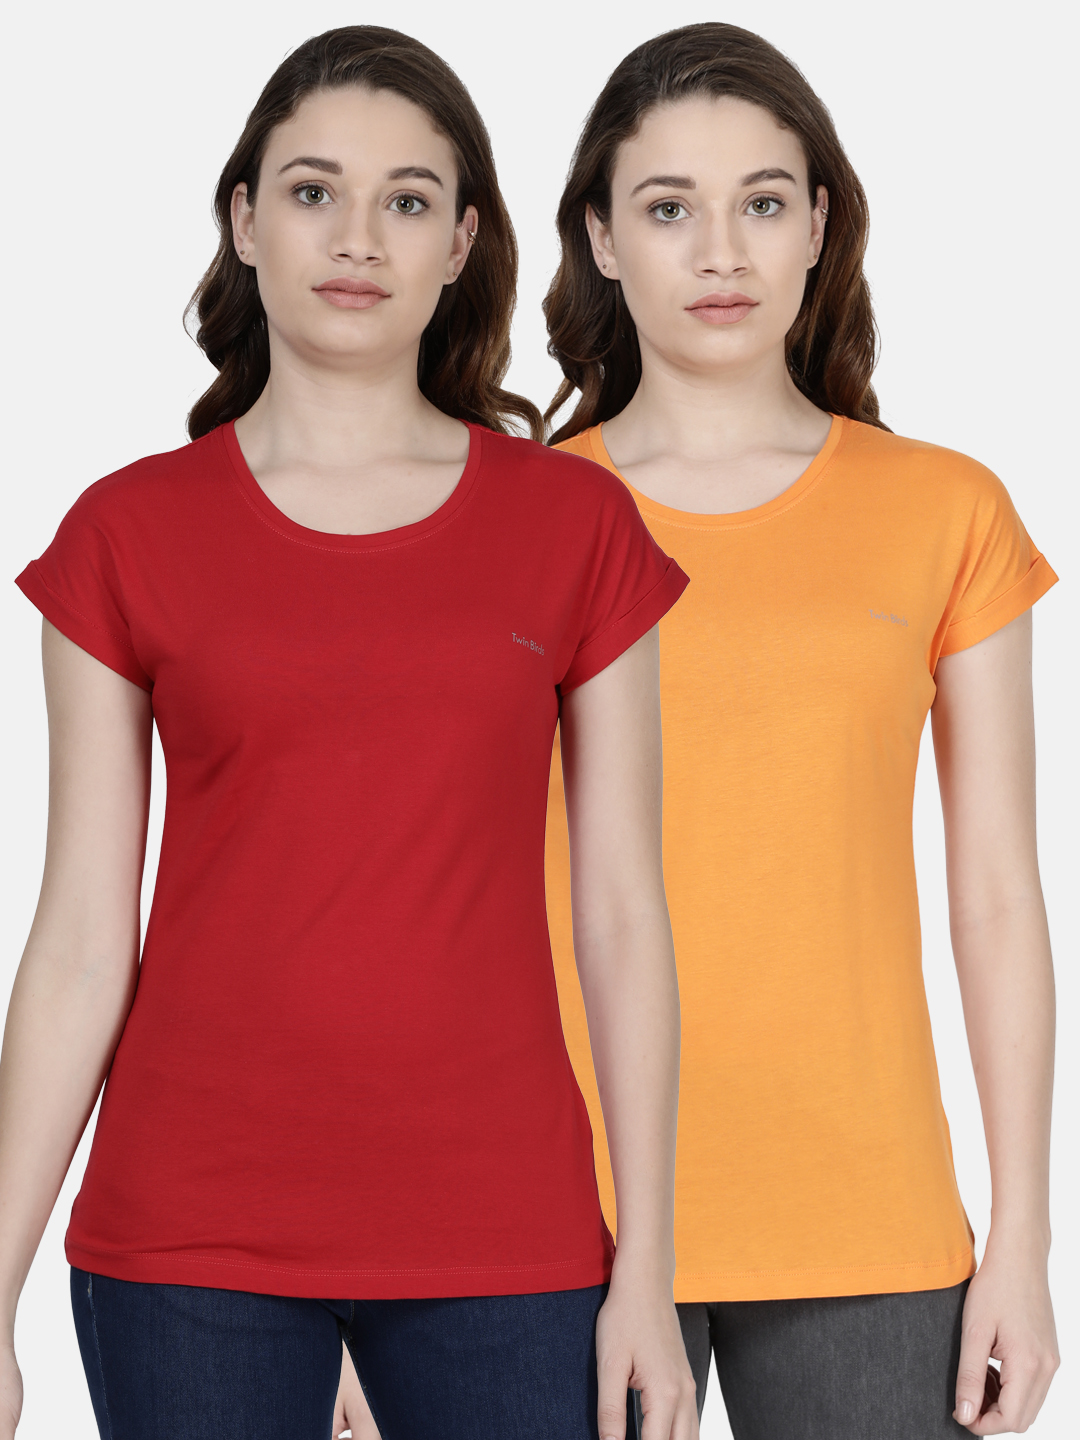 Twin Birds | Twinbirds Women Relaxed Fit Branded Tee - Combo Pack